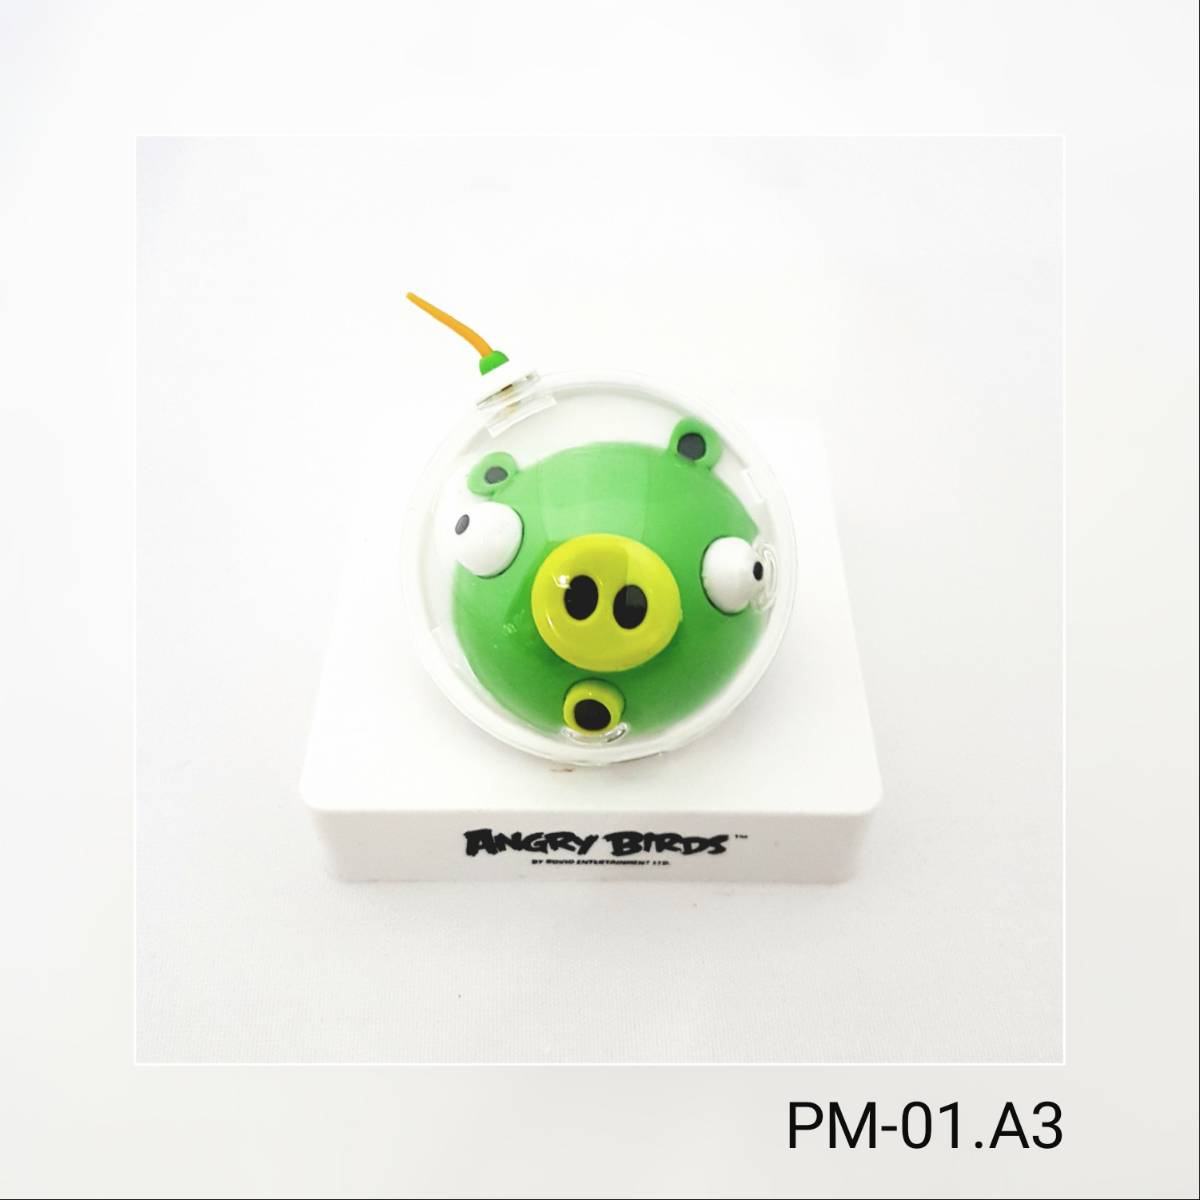 Parfum Mobil Angry Birds Collection Pm-001/a3